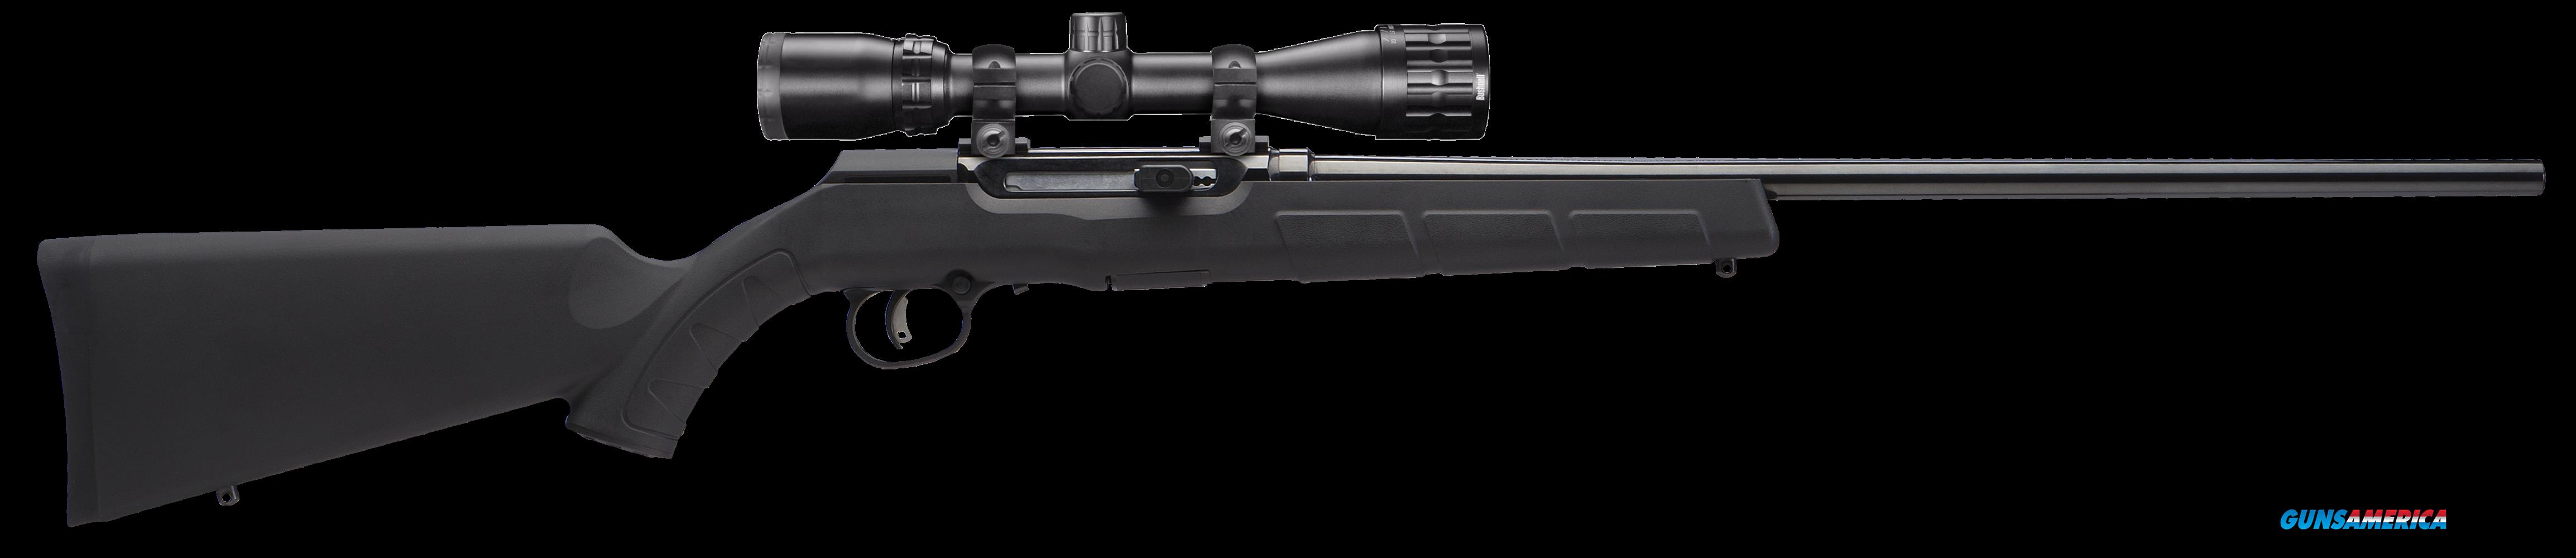 "Savage 47011 A17 XP with Scope Semi-Automatic 17 HMR 22"" 10+1 Synthetic Black Stk Black  Guns > Rifles > S Misc Rifles"